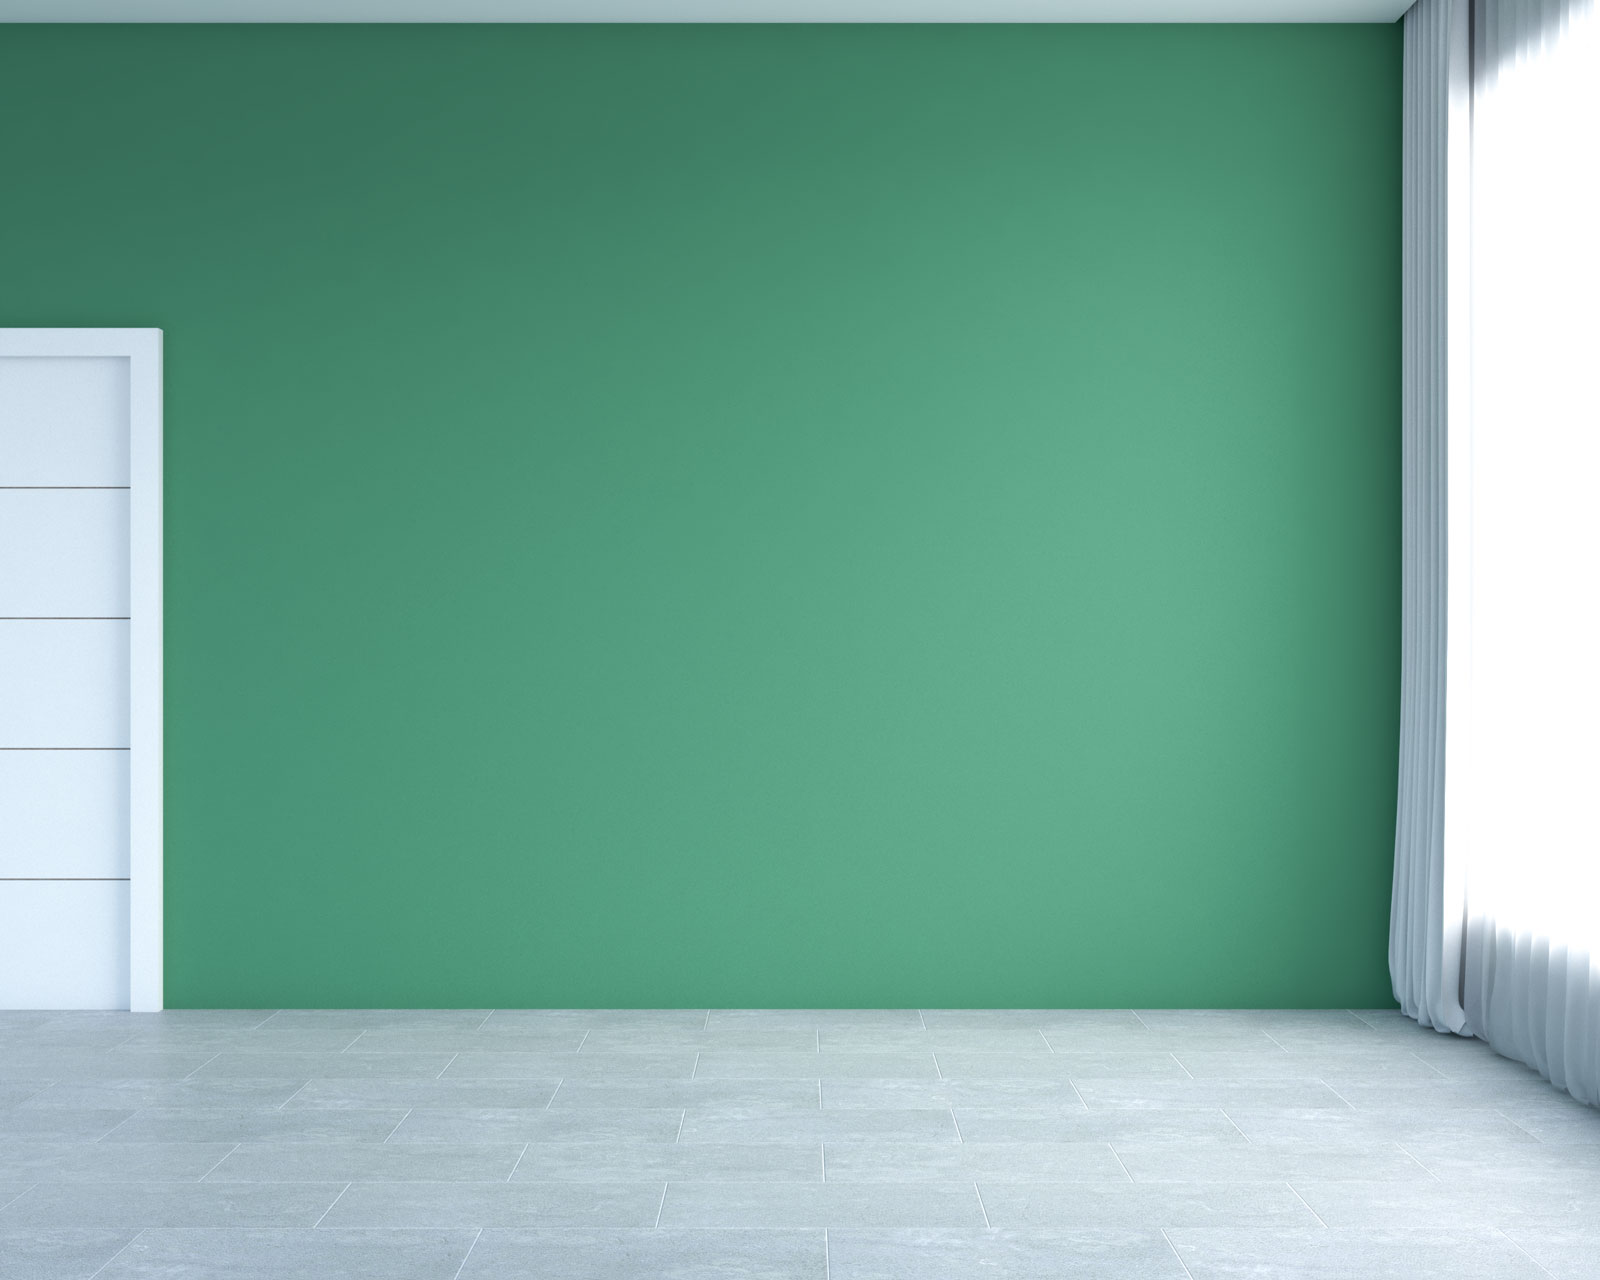 Gray stone tile flooring with green walls